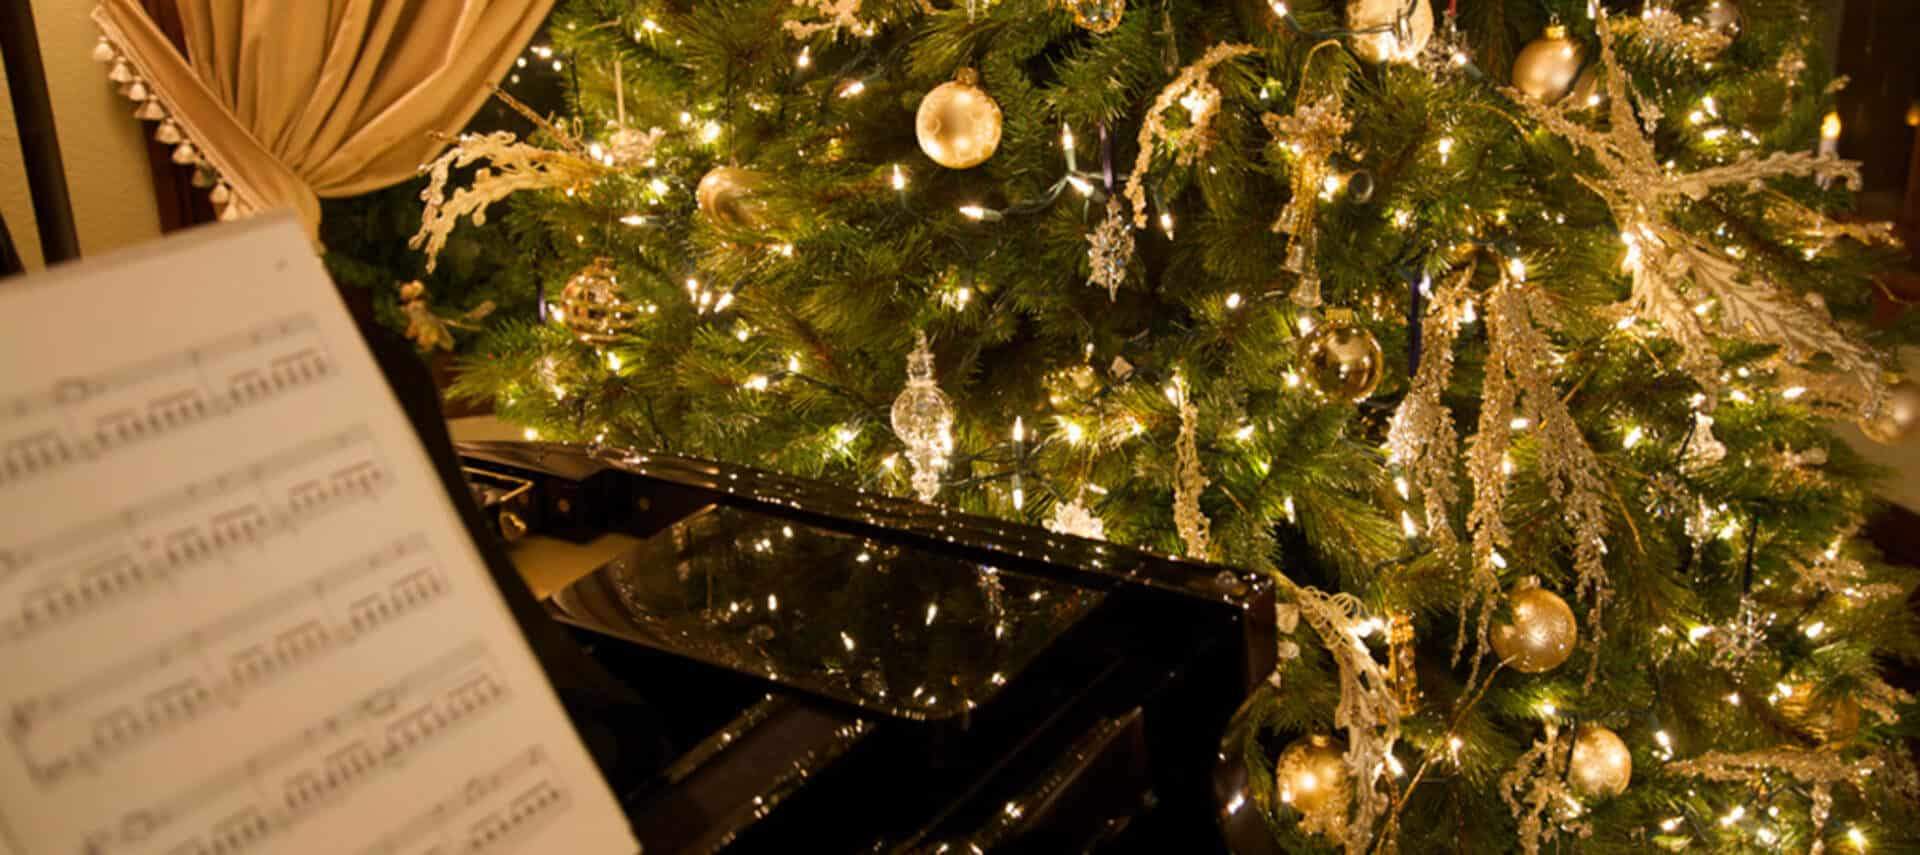 Christmas tree shines in glossy baby grand piano